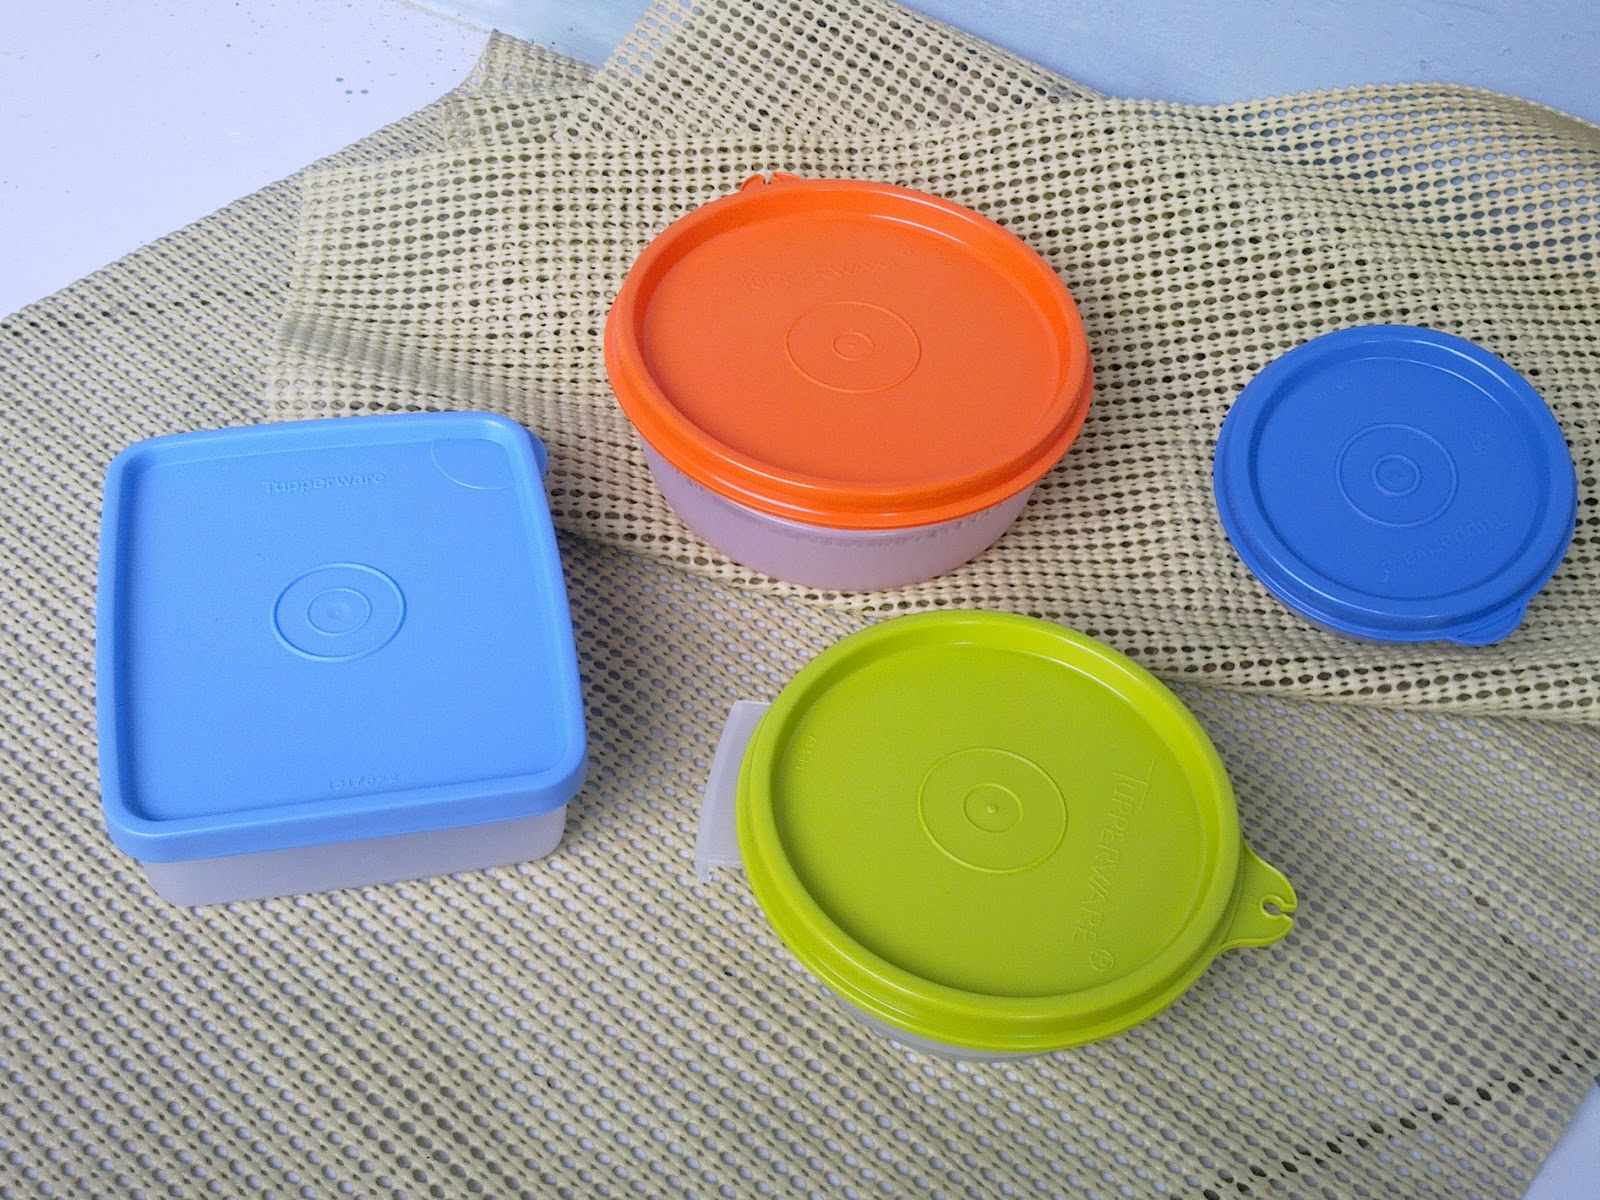 http://1tupperware.blogspot.com/2010/11/tupperware-small-collection-4-set.html